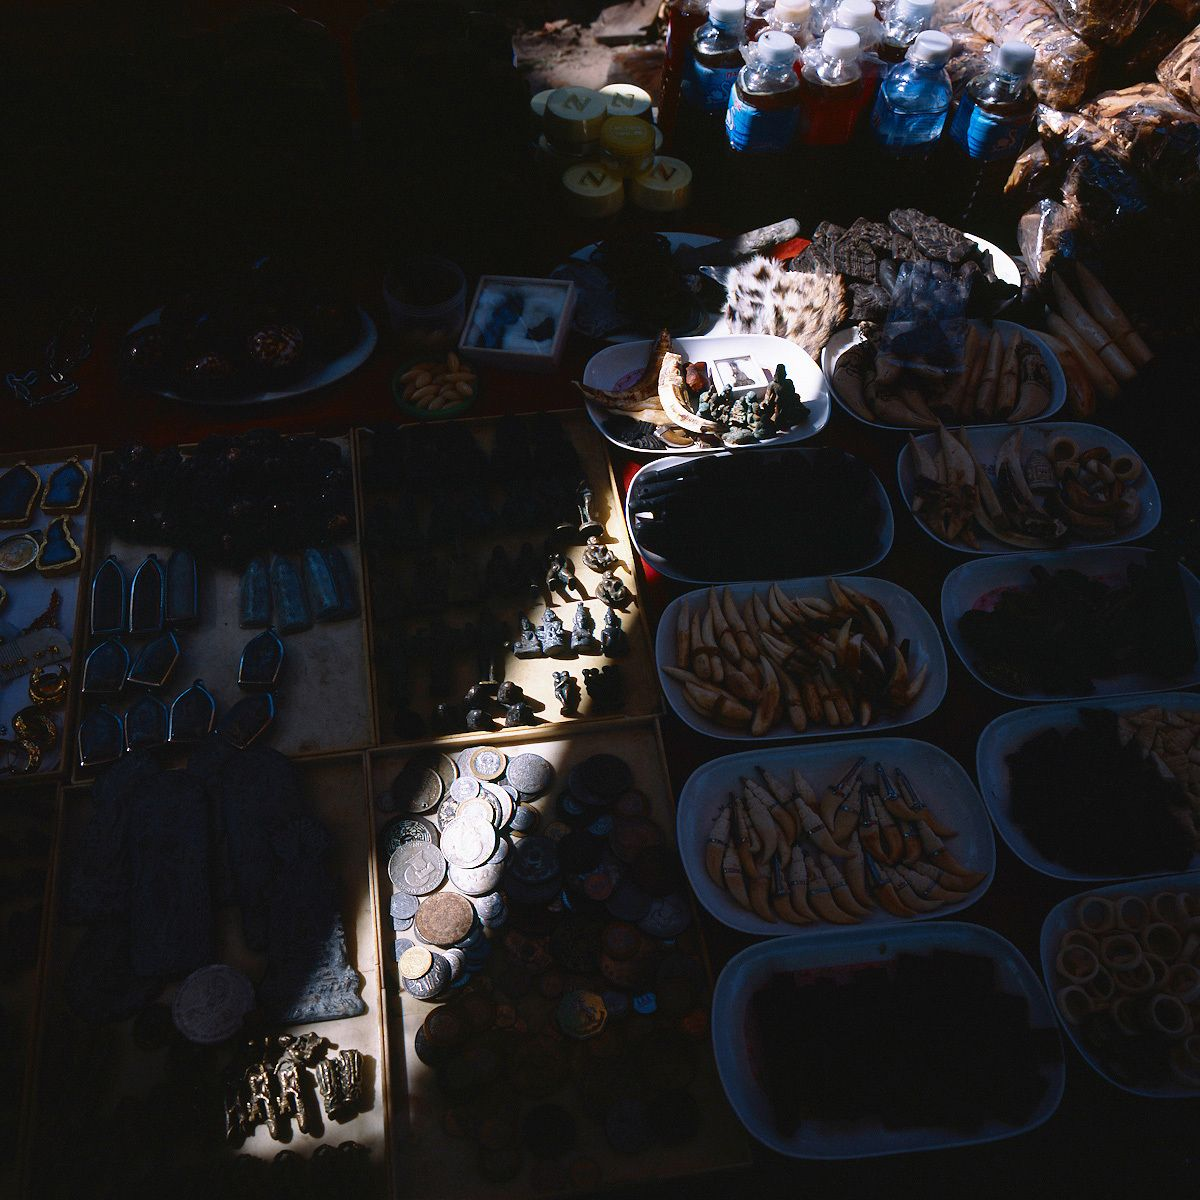 Amulets in a market.